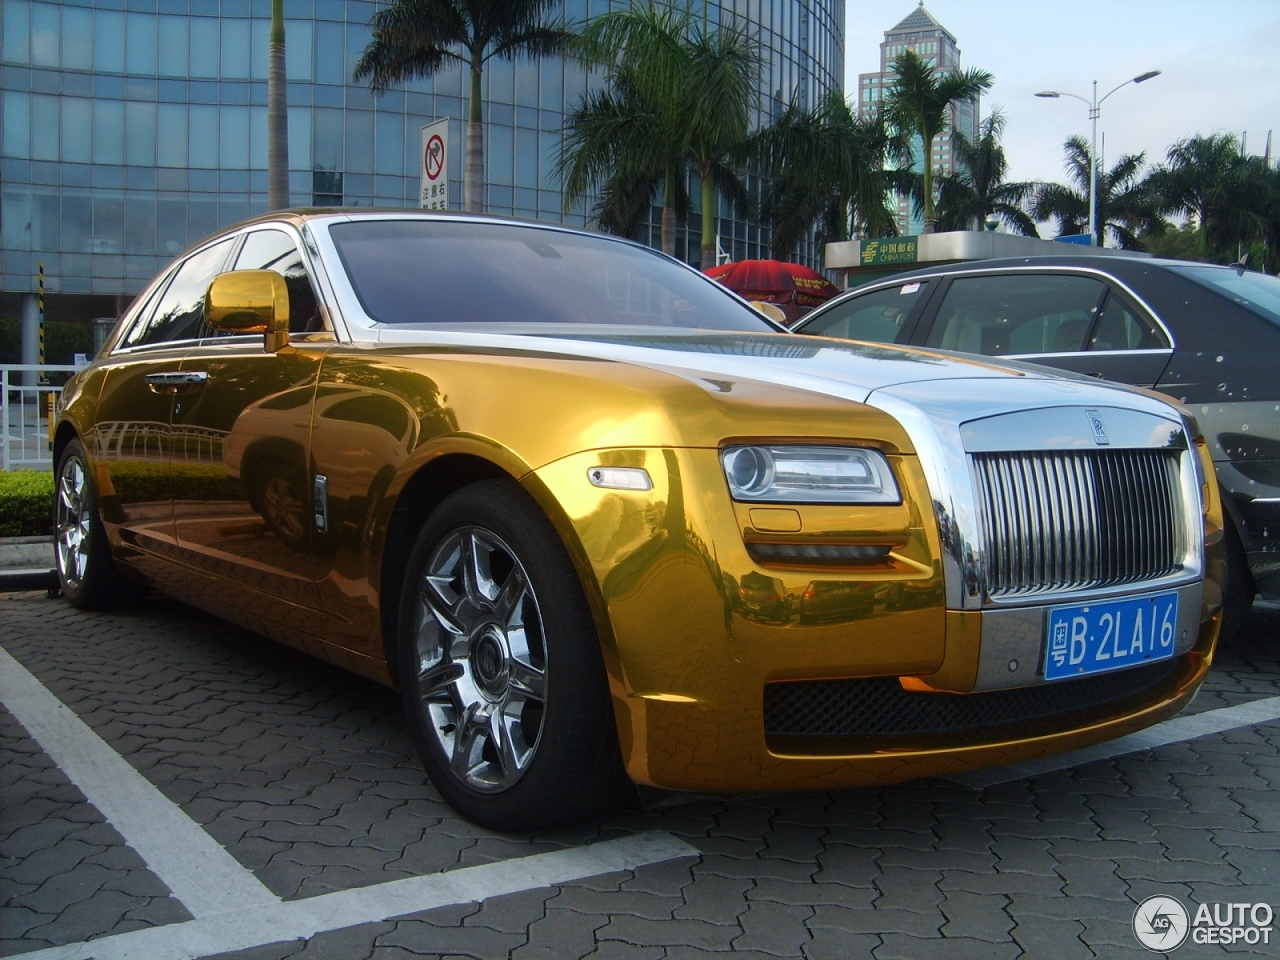 2016 Lincoln Town Car >> Rolls-Royce Ghost - 10 May 2013 - Autogespot